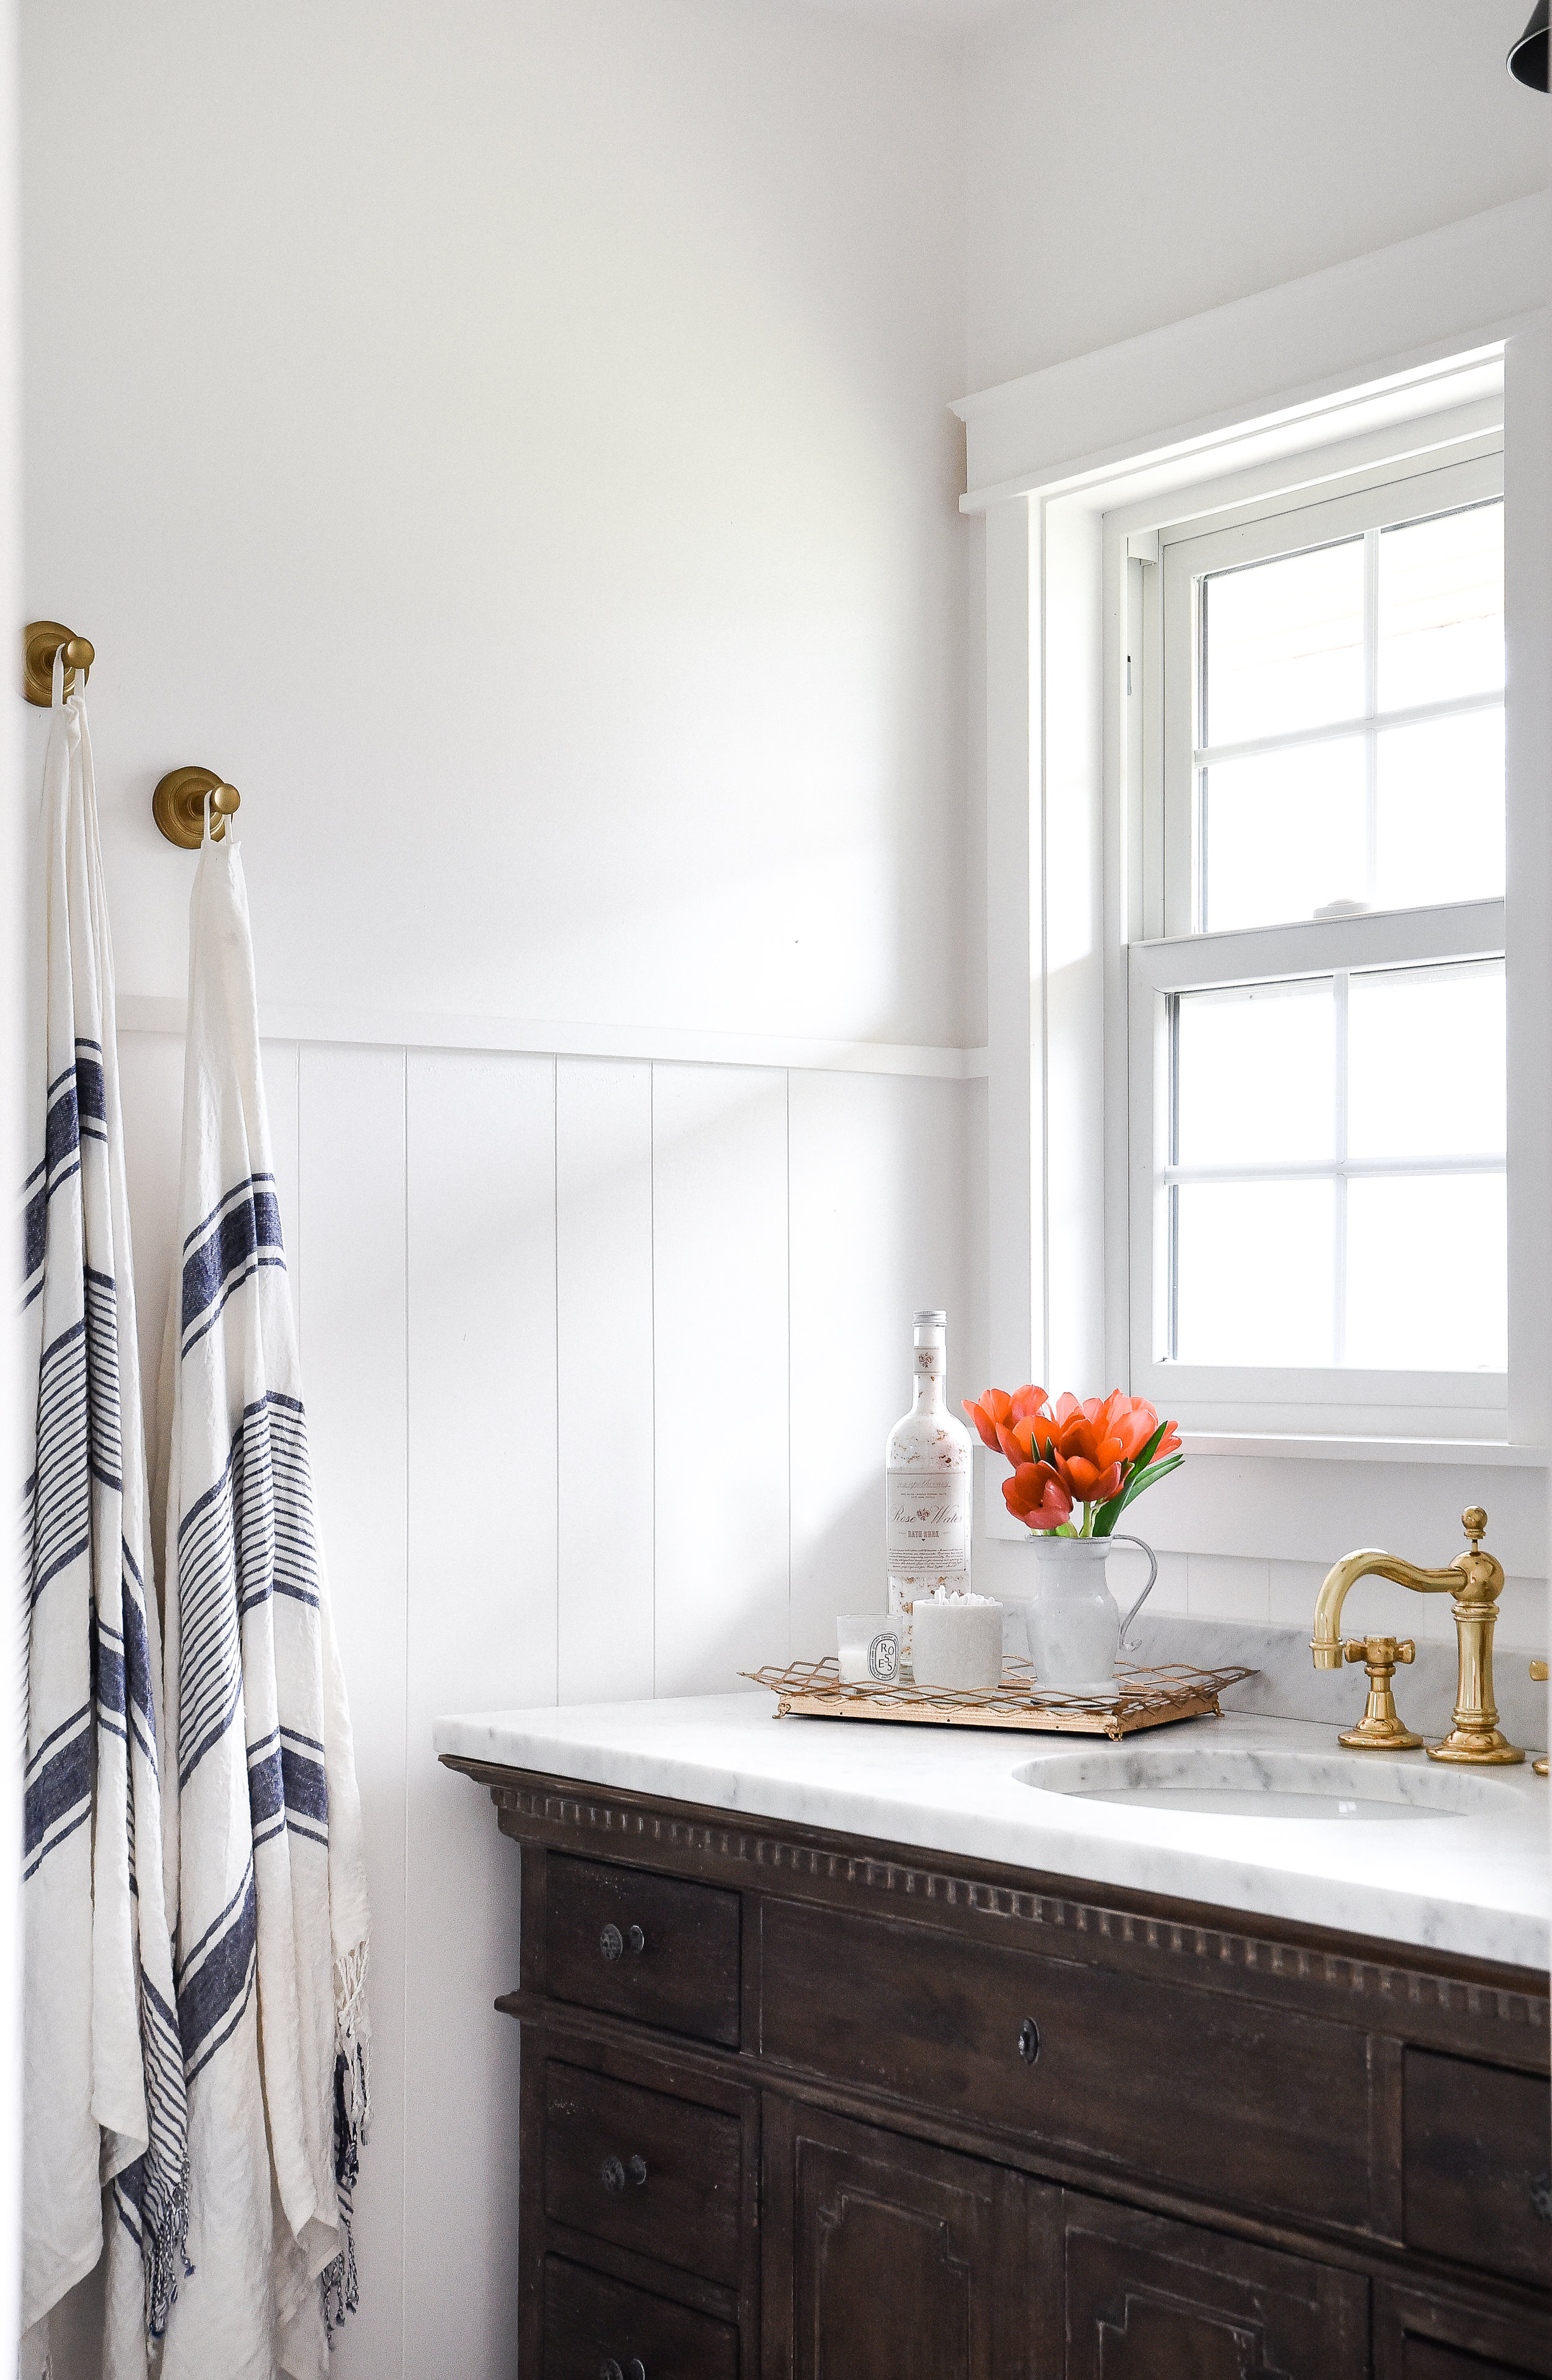 Beautiful white modern farmhouse bathroom design - perfect guest bedroom and bathroom with vintage wood vanity, marble top, and brass fixtures. boxwoodavenue.com #bathroomdesign #farmhousebathroom